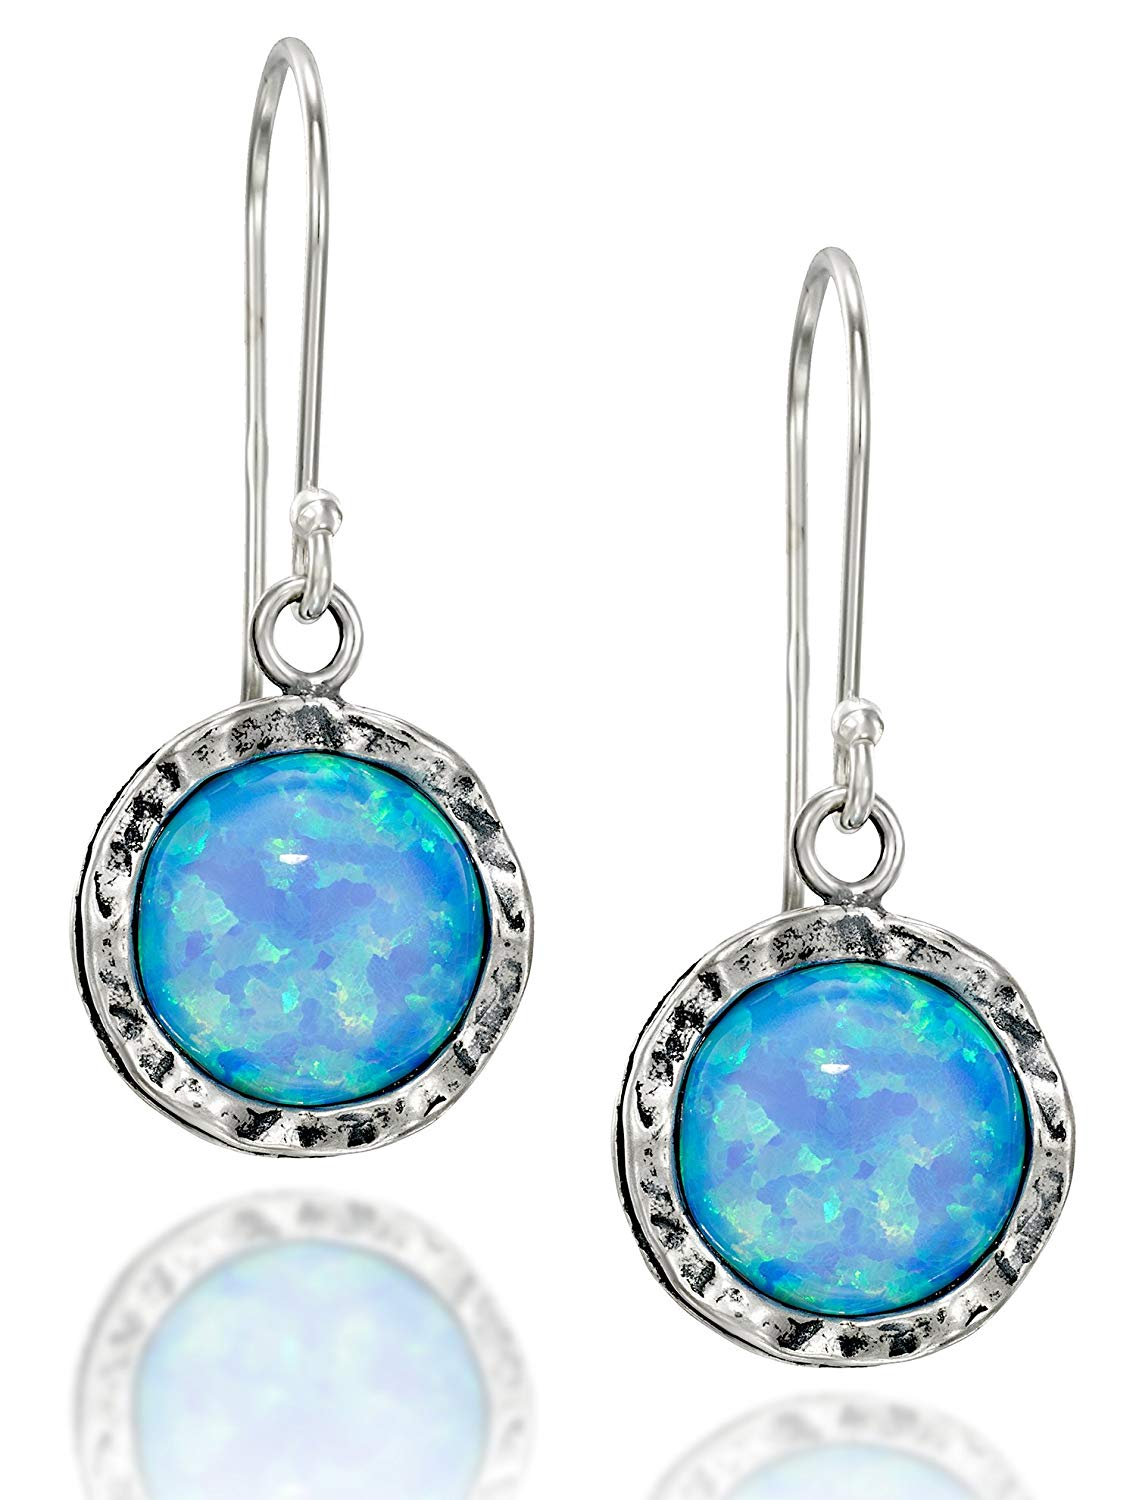 Shimmering Round 925 Sterling Silver Dangle Earrings with 10mm Created White or Blue Fire Opal Stones